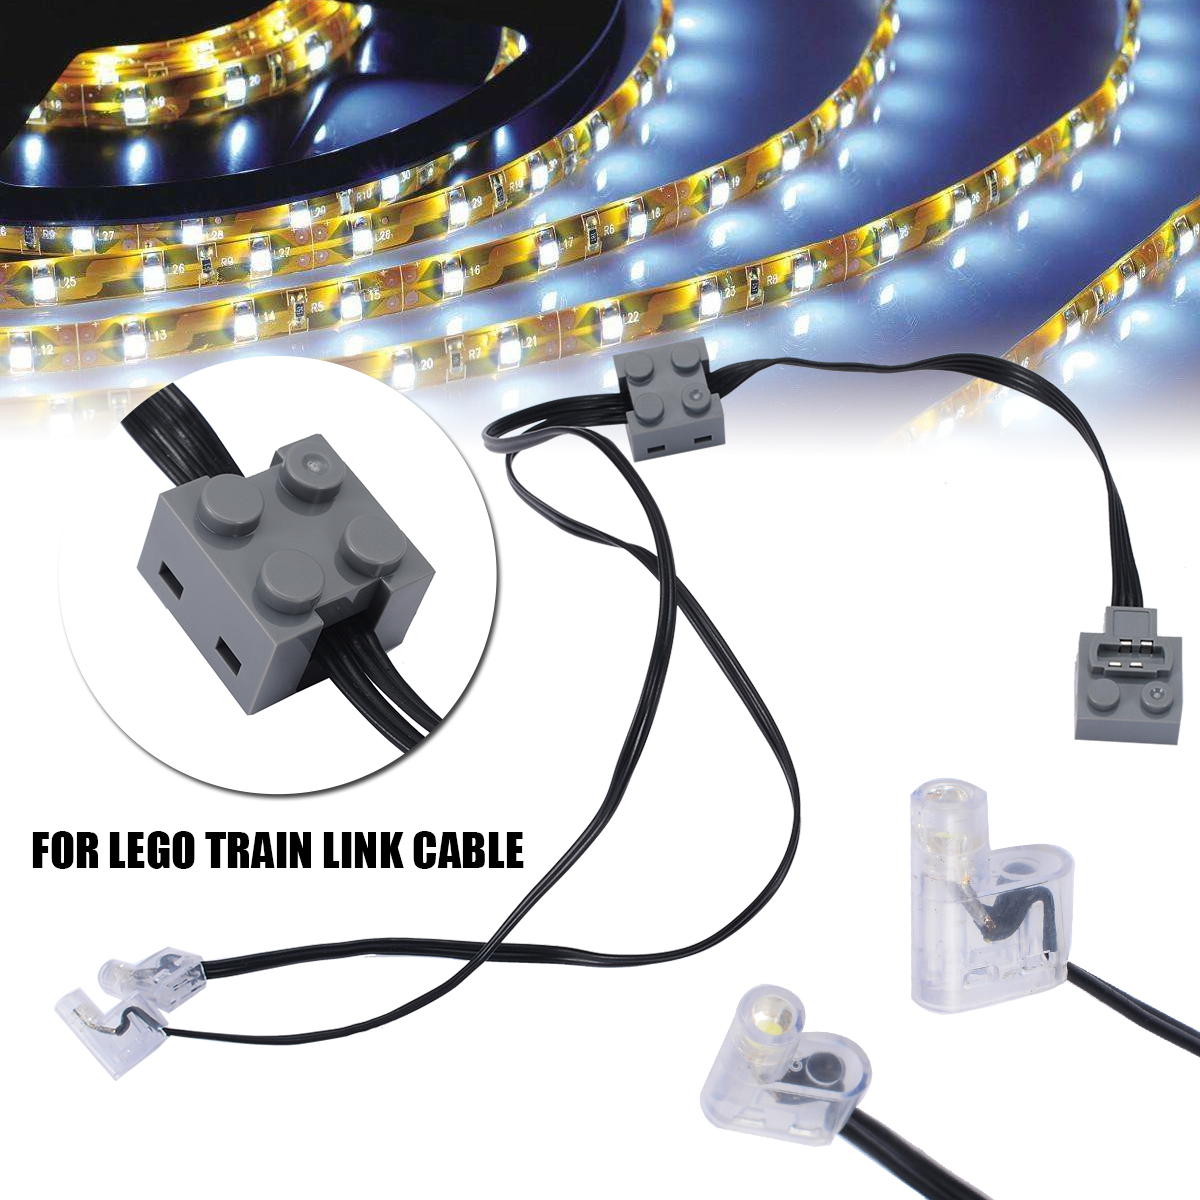 1pc 37cm Technic Power Function 8870 LED Light Link Line Cable For Lego Train Vehicle High Quality